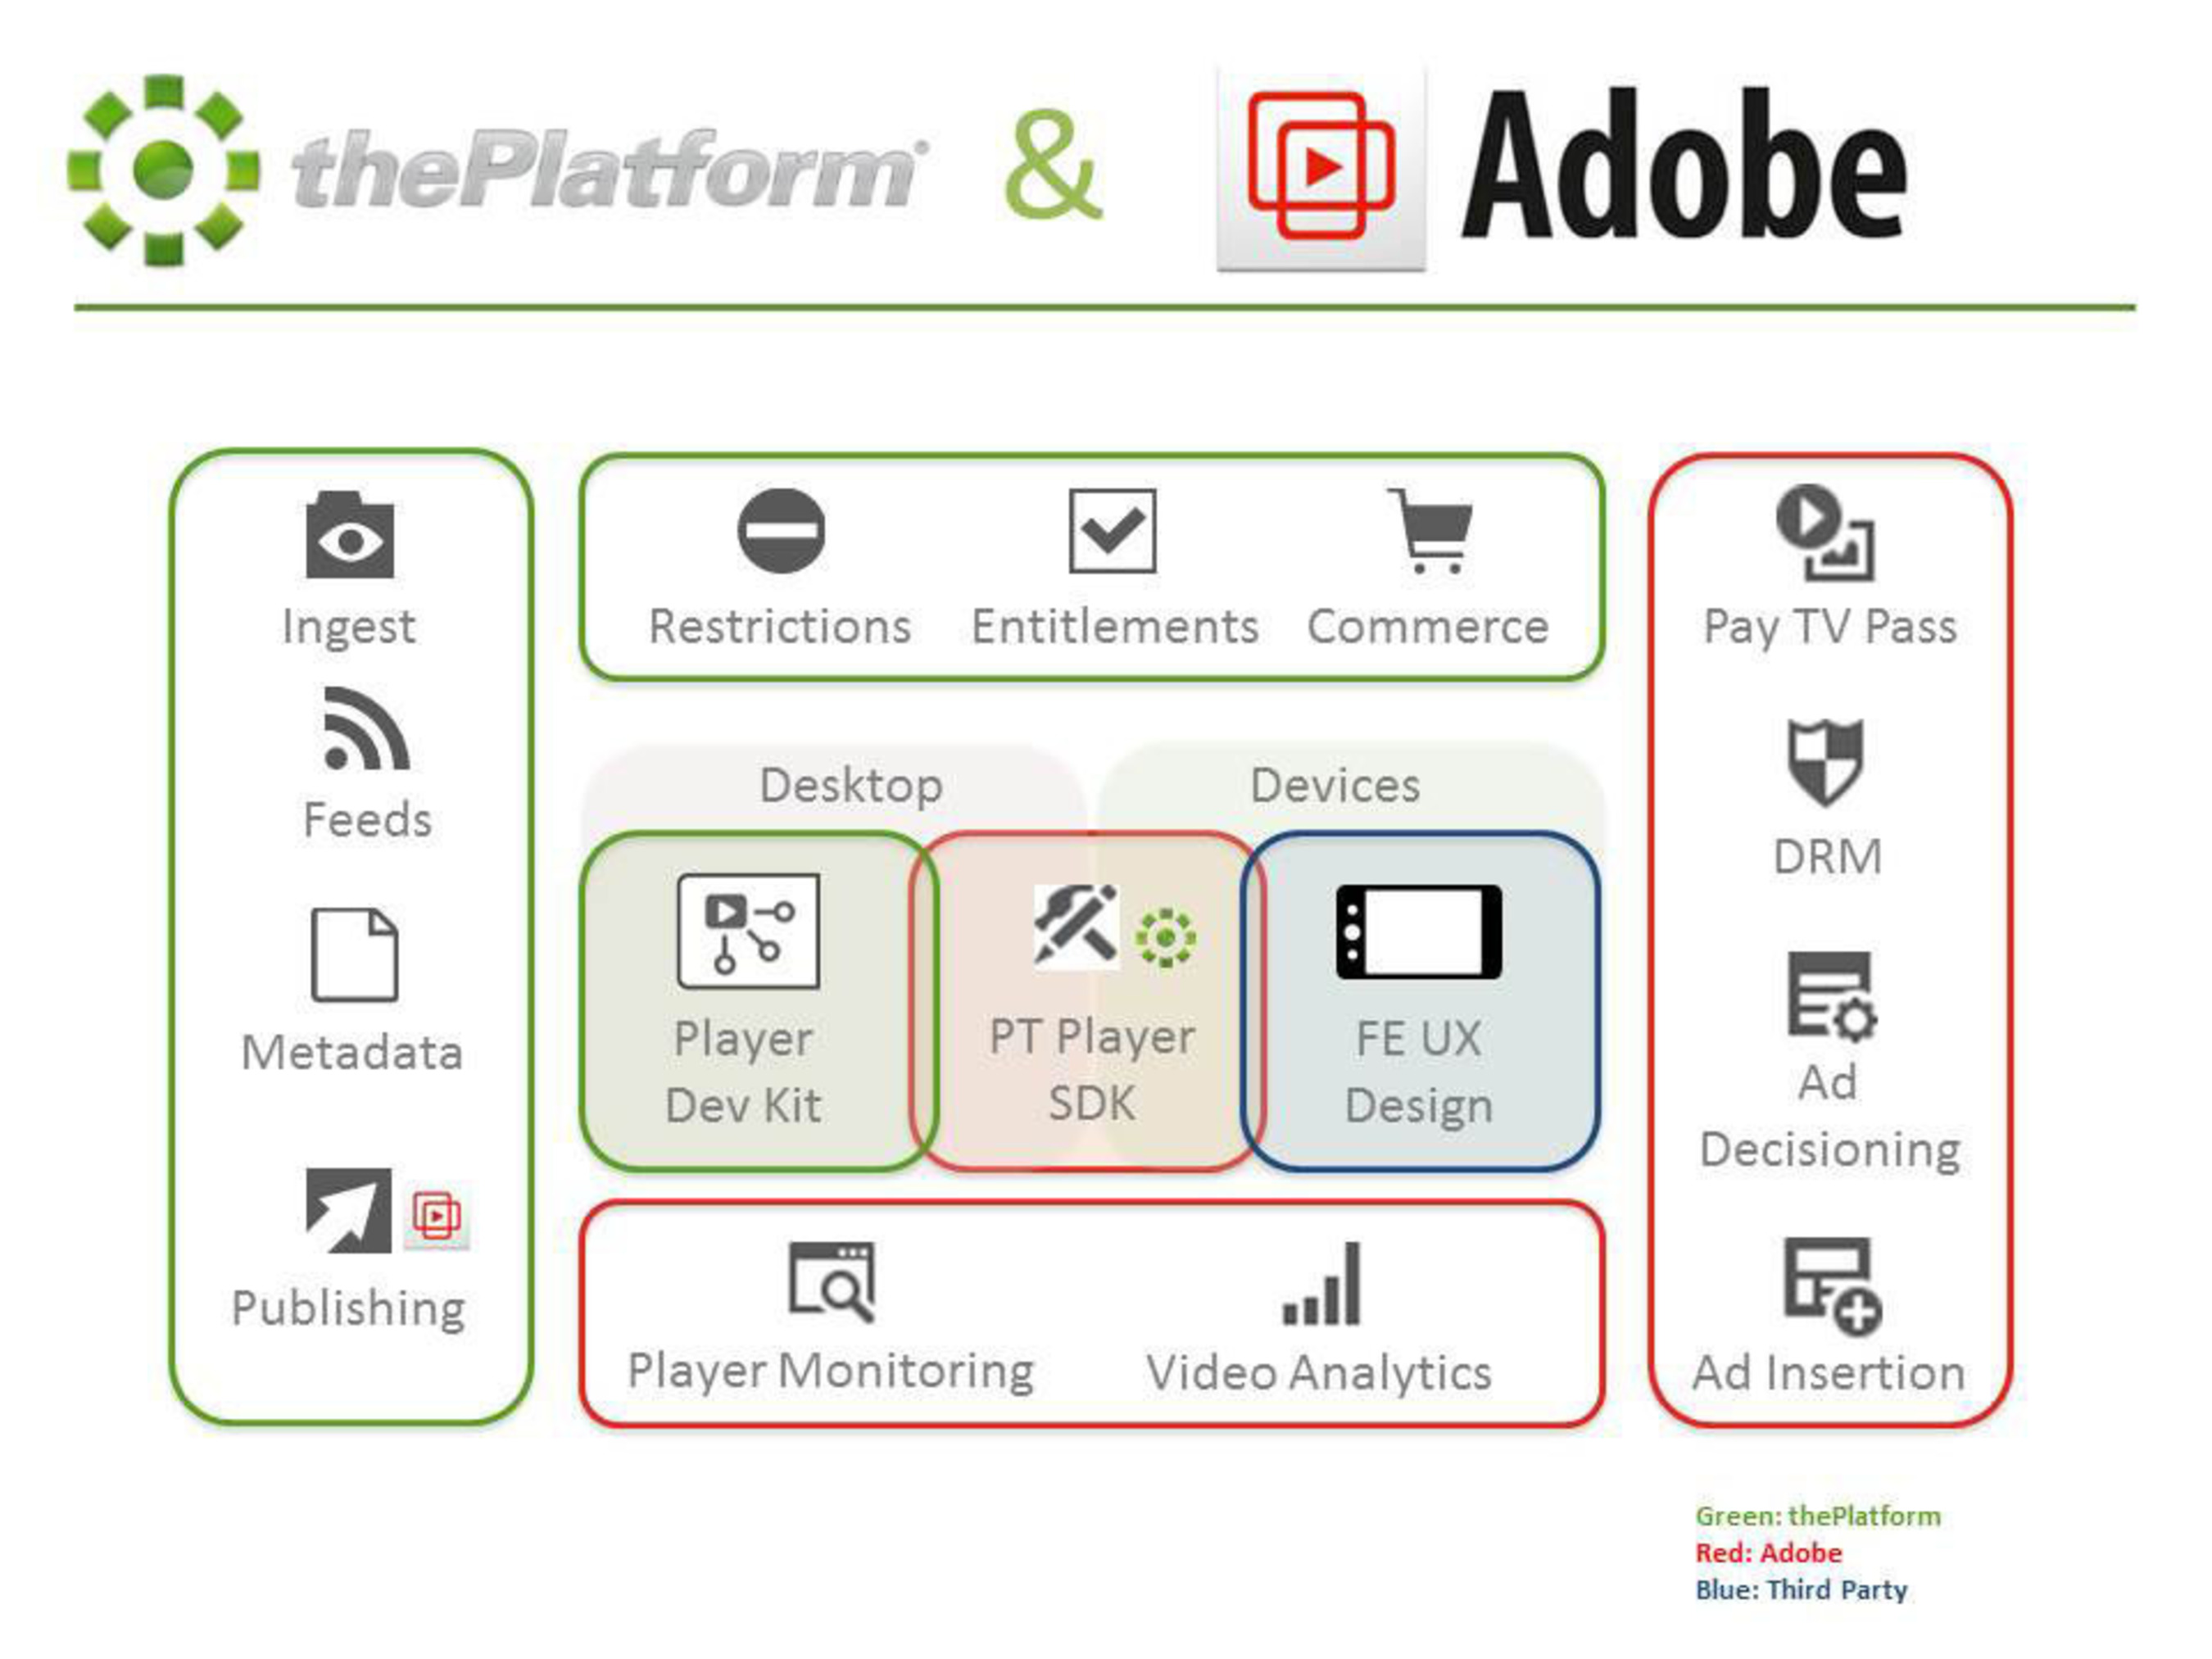 thePlatform Forges New Strategic Relationship with Adobe to Serve Major Media and Entertainment